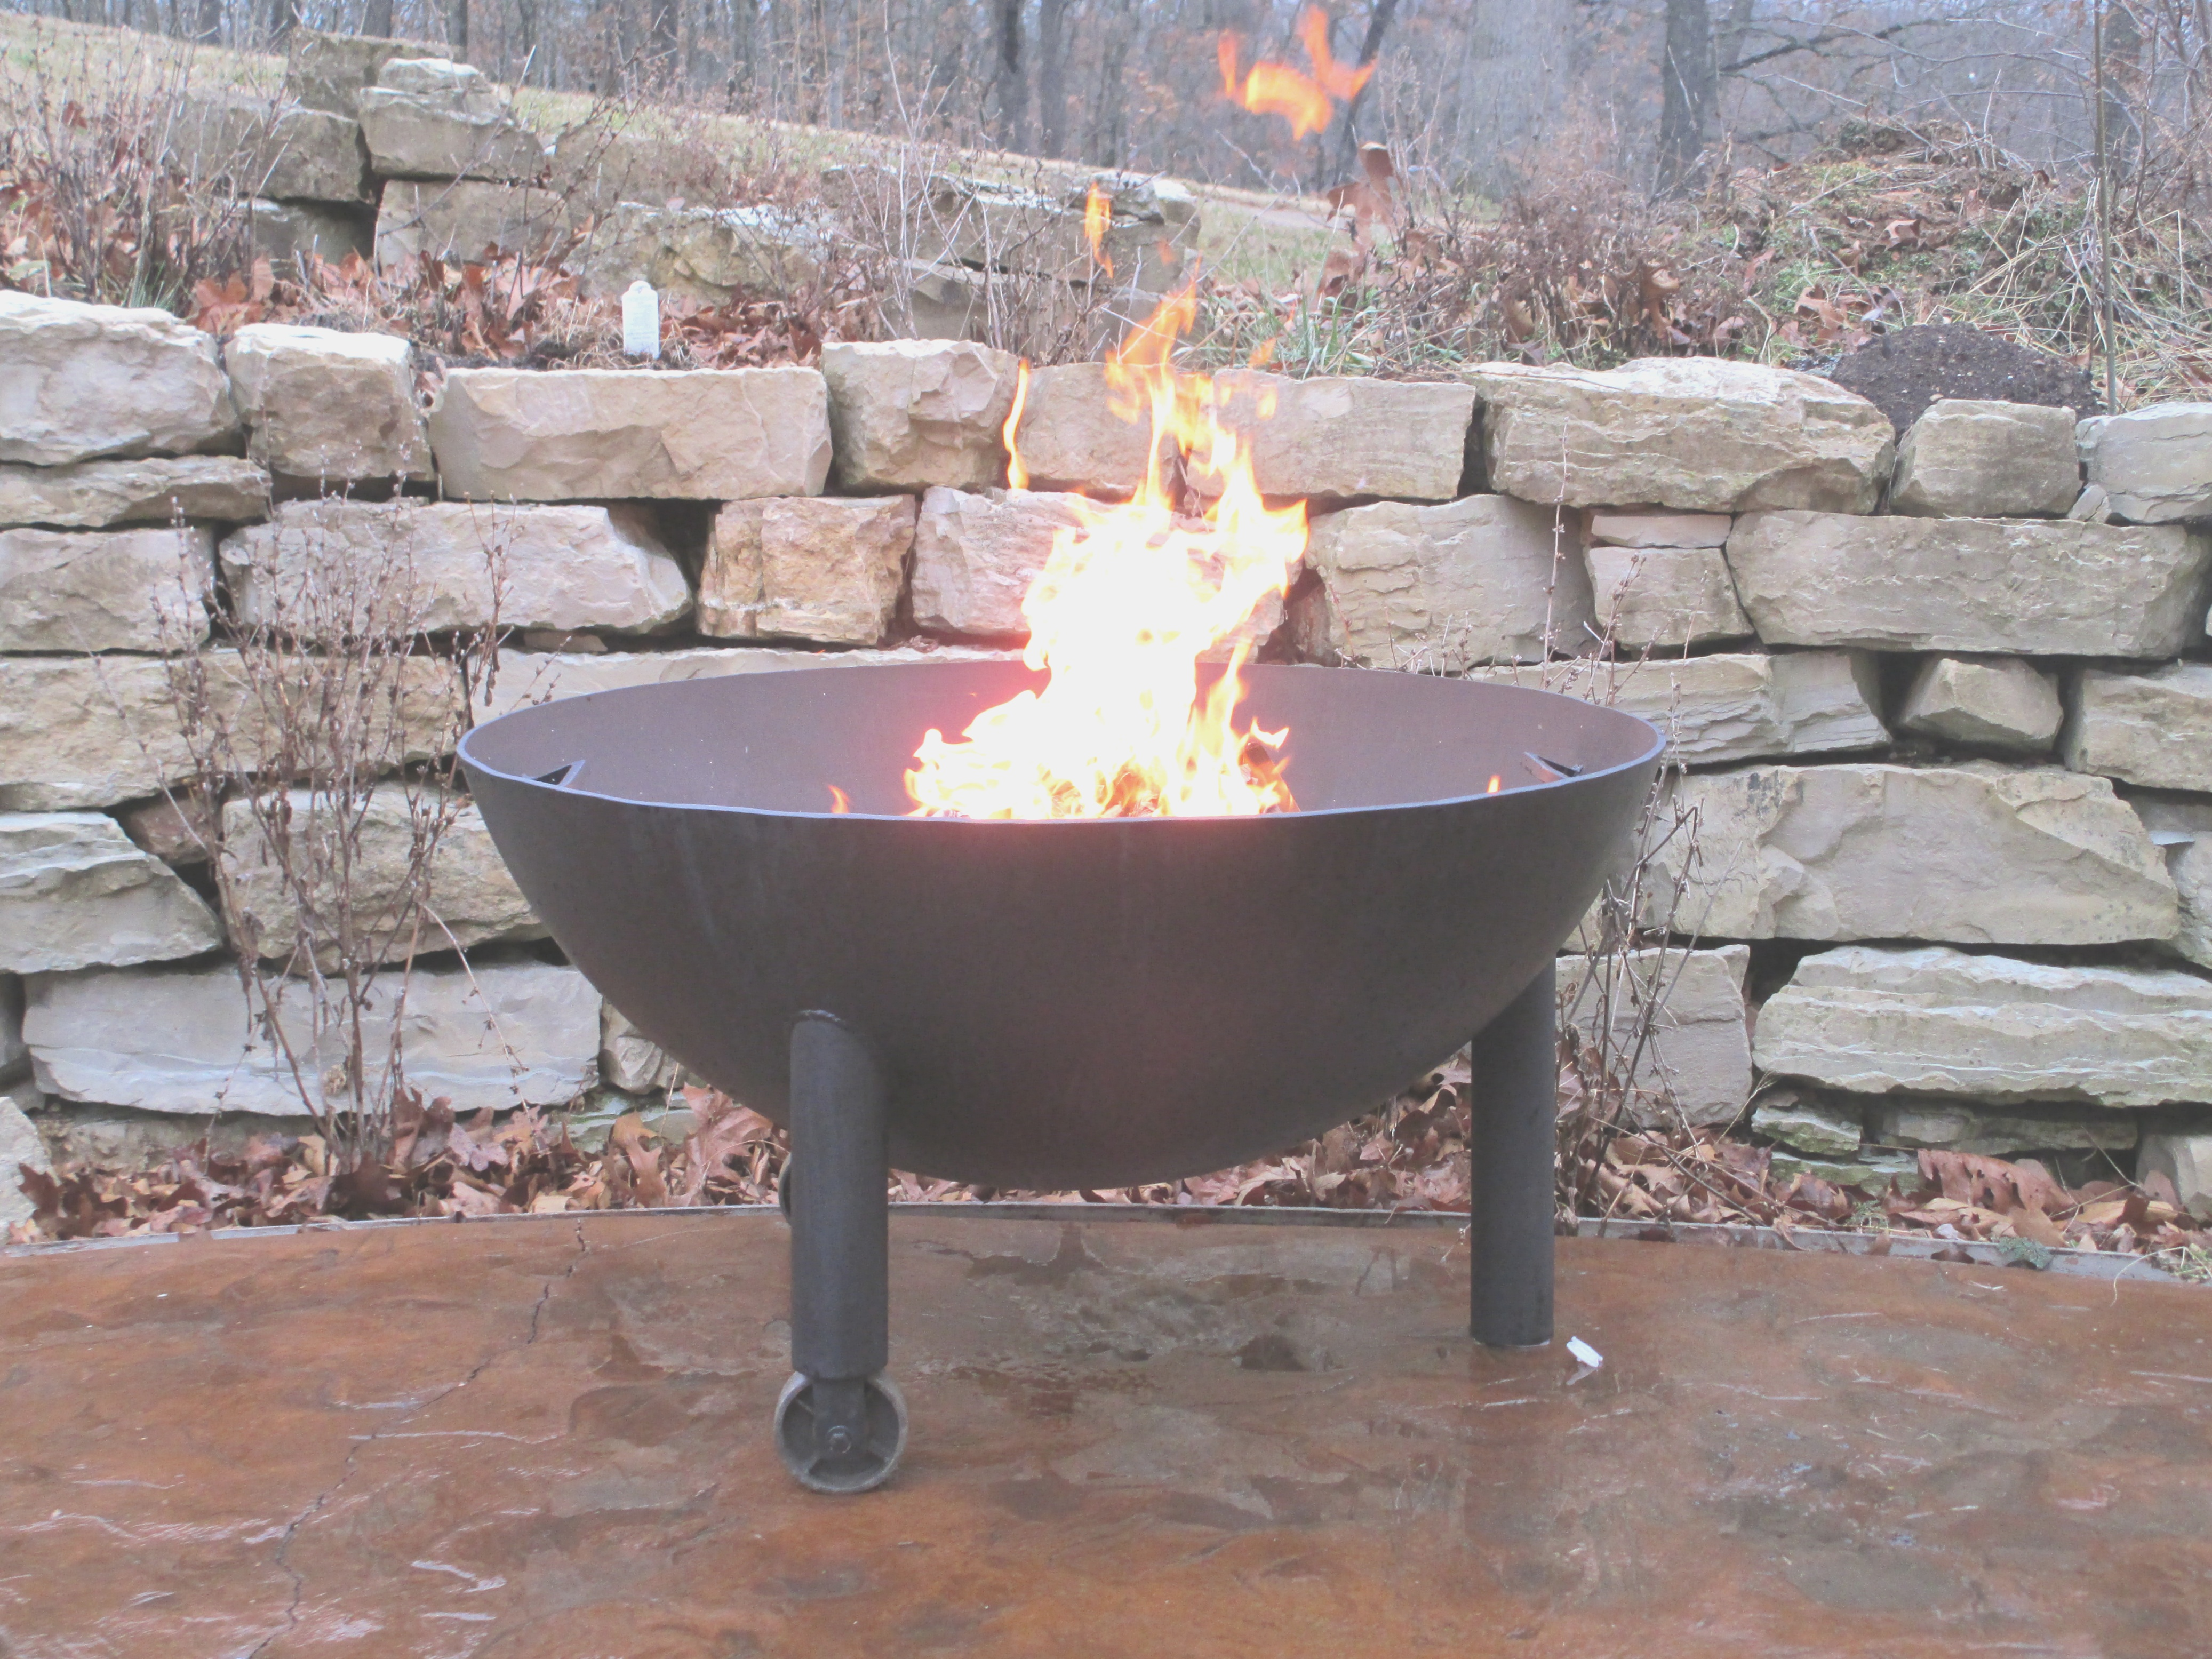 propane tank fire pit | Fire Pit Made From Propane Tank Far-fetched Iron Hollow Metals ..